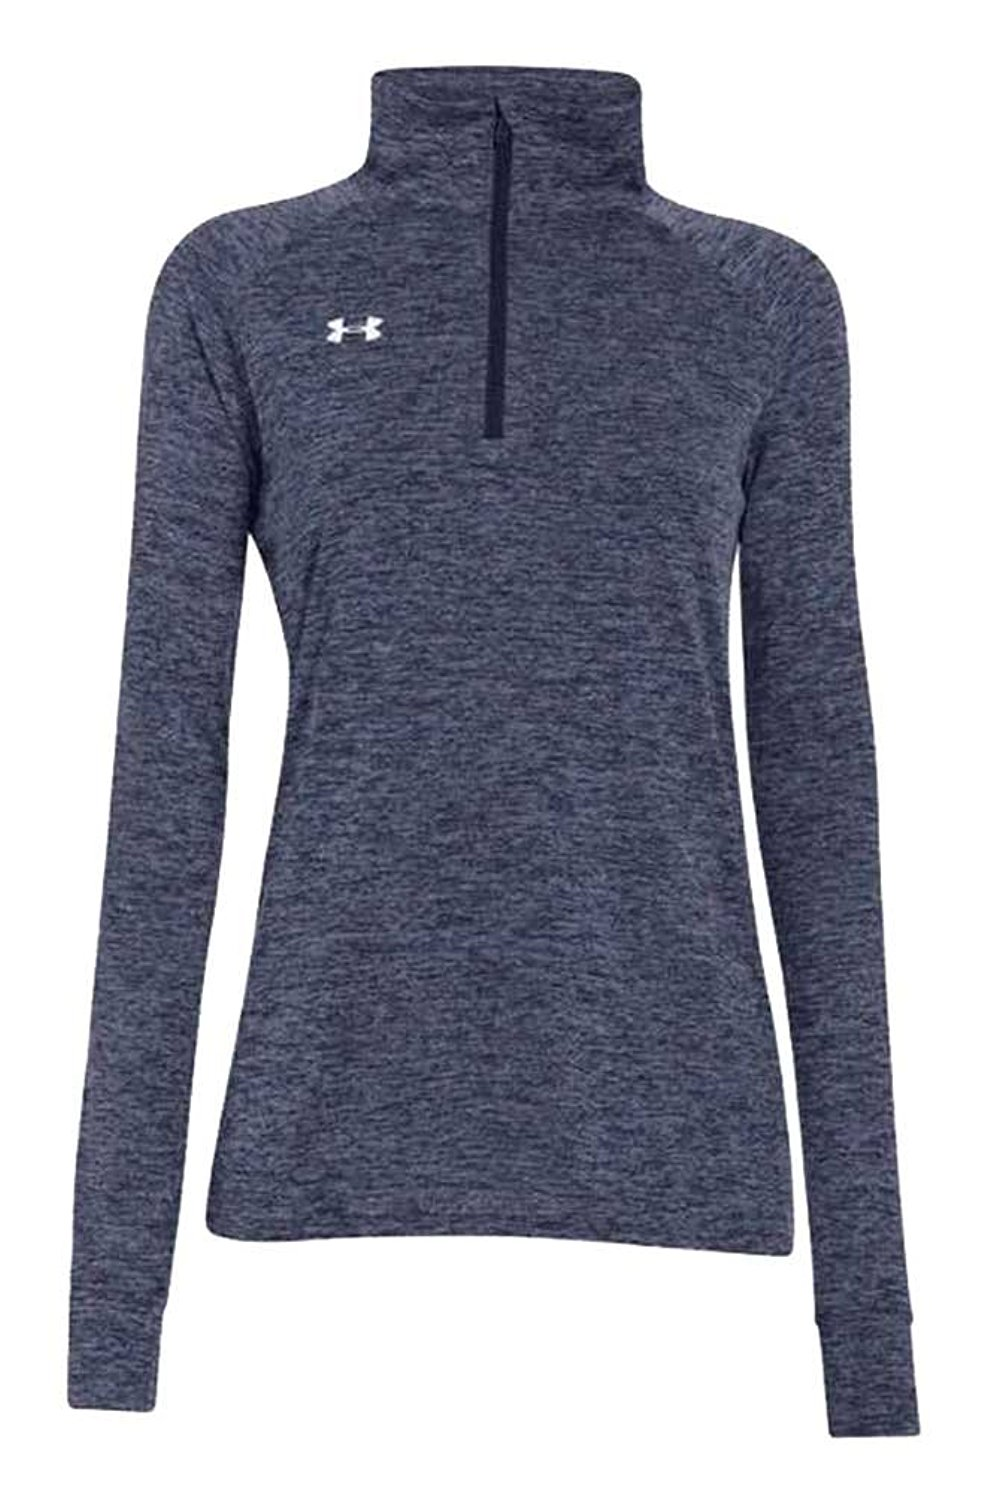 d6503661 Under Armour - Under Armour Women's UA Twisted Tech 1/4 Zip Small Midnight  Navy - Walmart.com